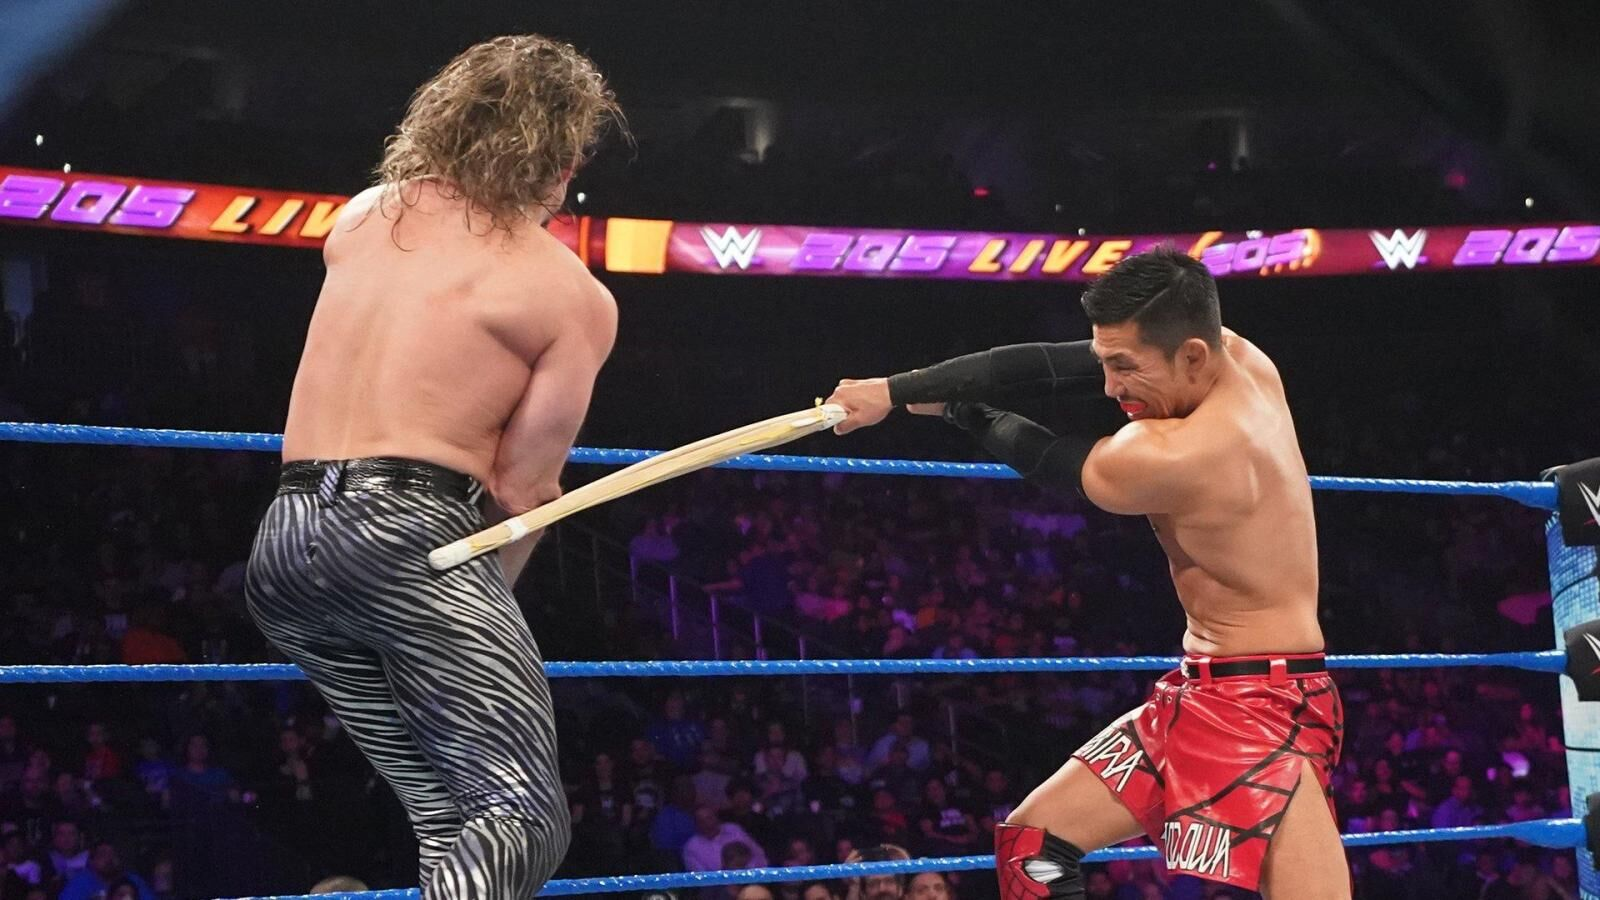 205 Live recap for October 11, 2019: The Most Exciting Hour on Television returns